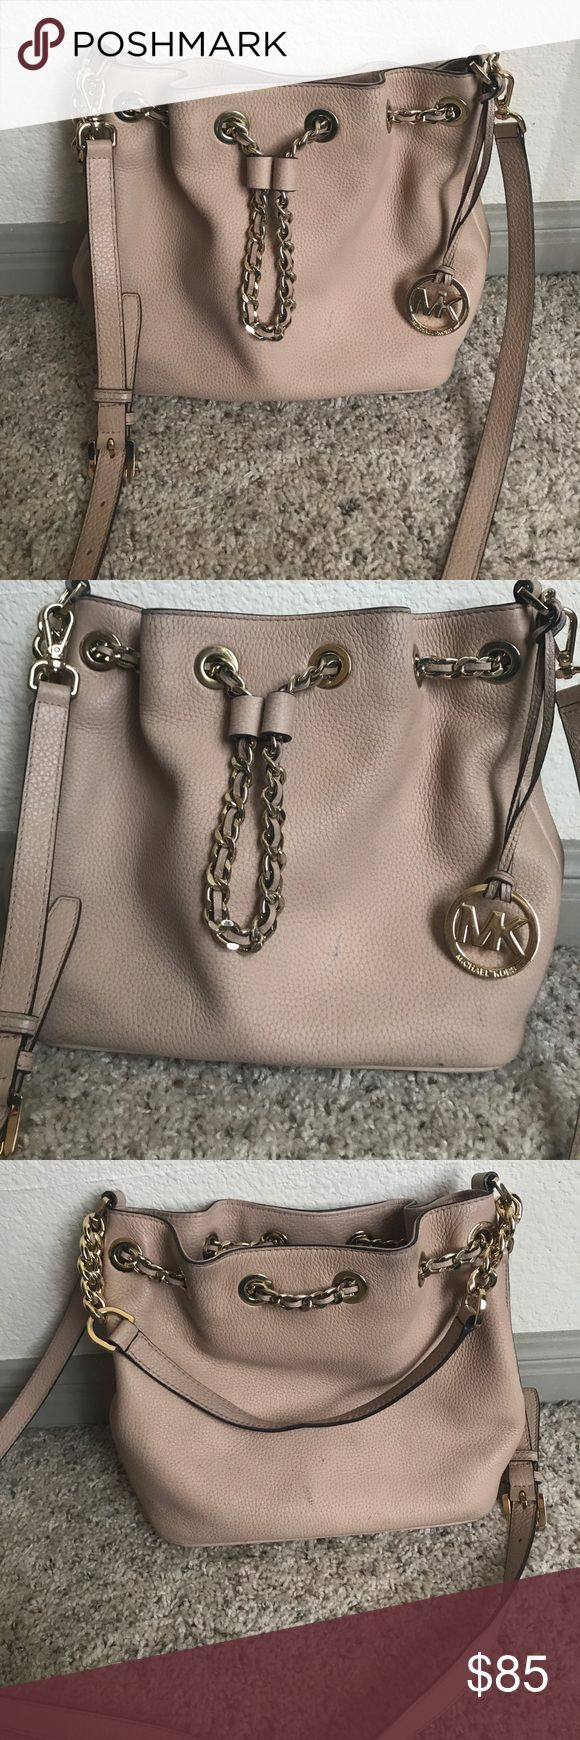 Michael Kors Neutral purse The purse is authentic and used with light wear. It's light tan leather. It has a magnetic close and cinches at the top. It has several inside pockets. There is a short strap and long detachable strap Michael Kors Collection Bags Shoulder Bags